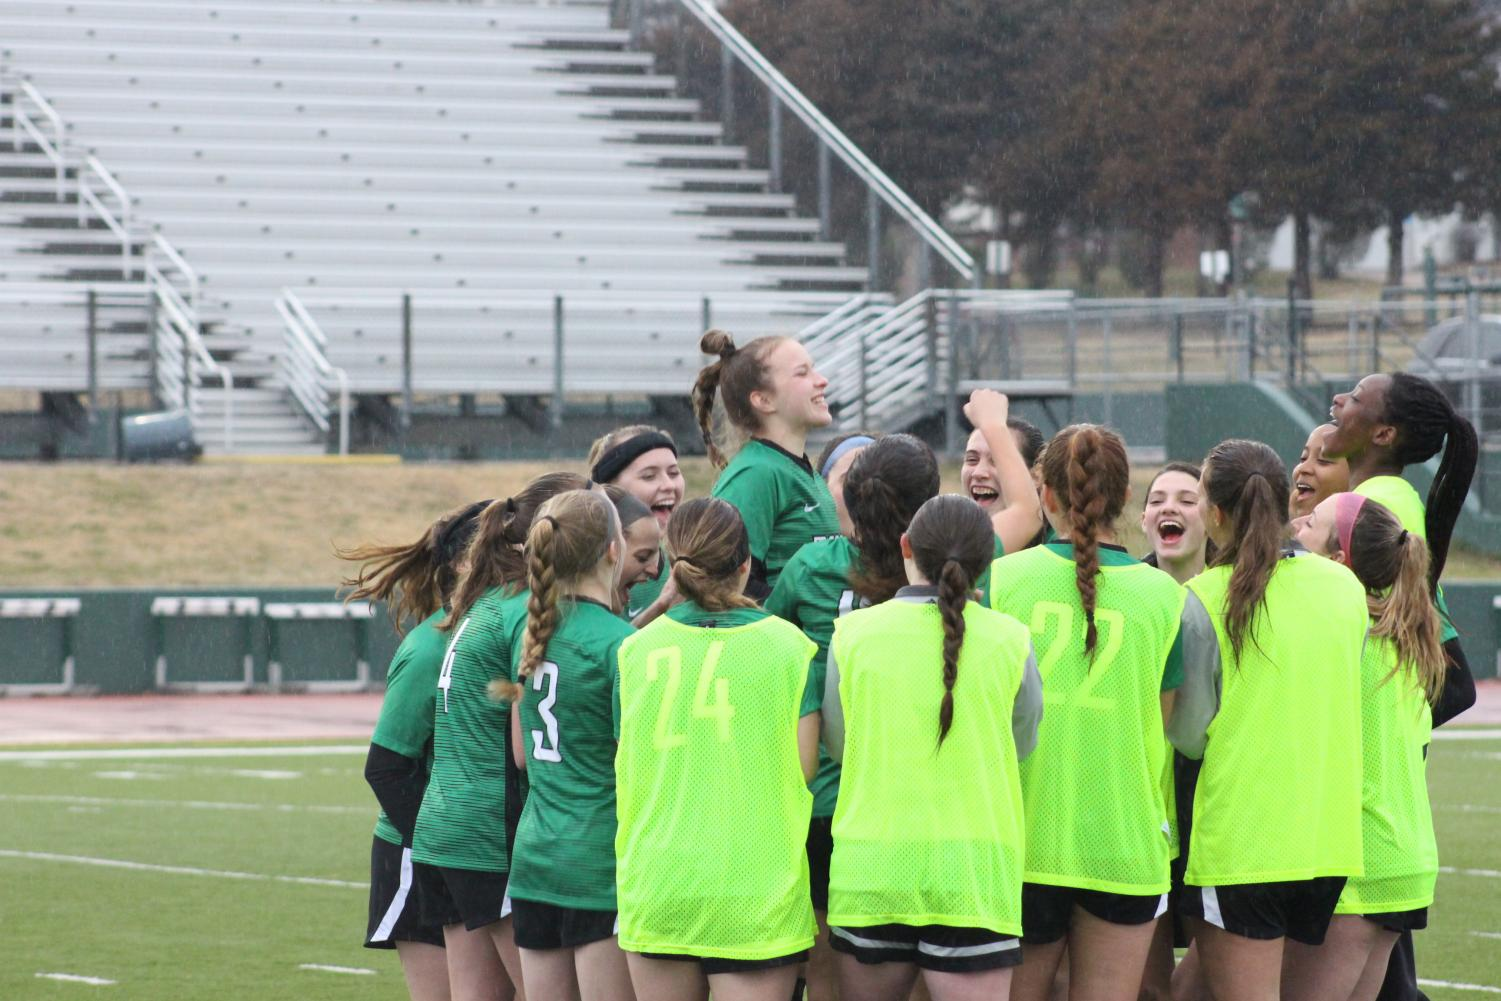 3/19 Derby vs. Valley Center Girls' Soccer (by Callie Knudson)